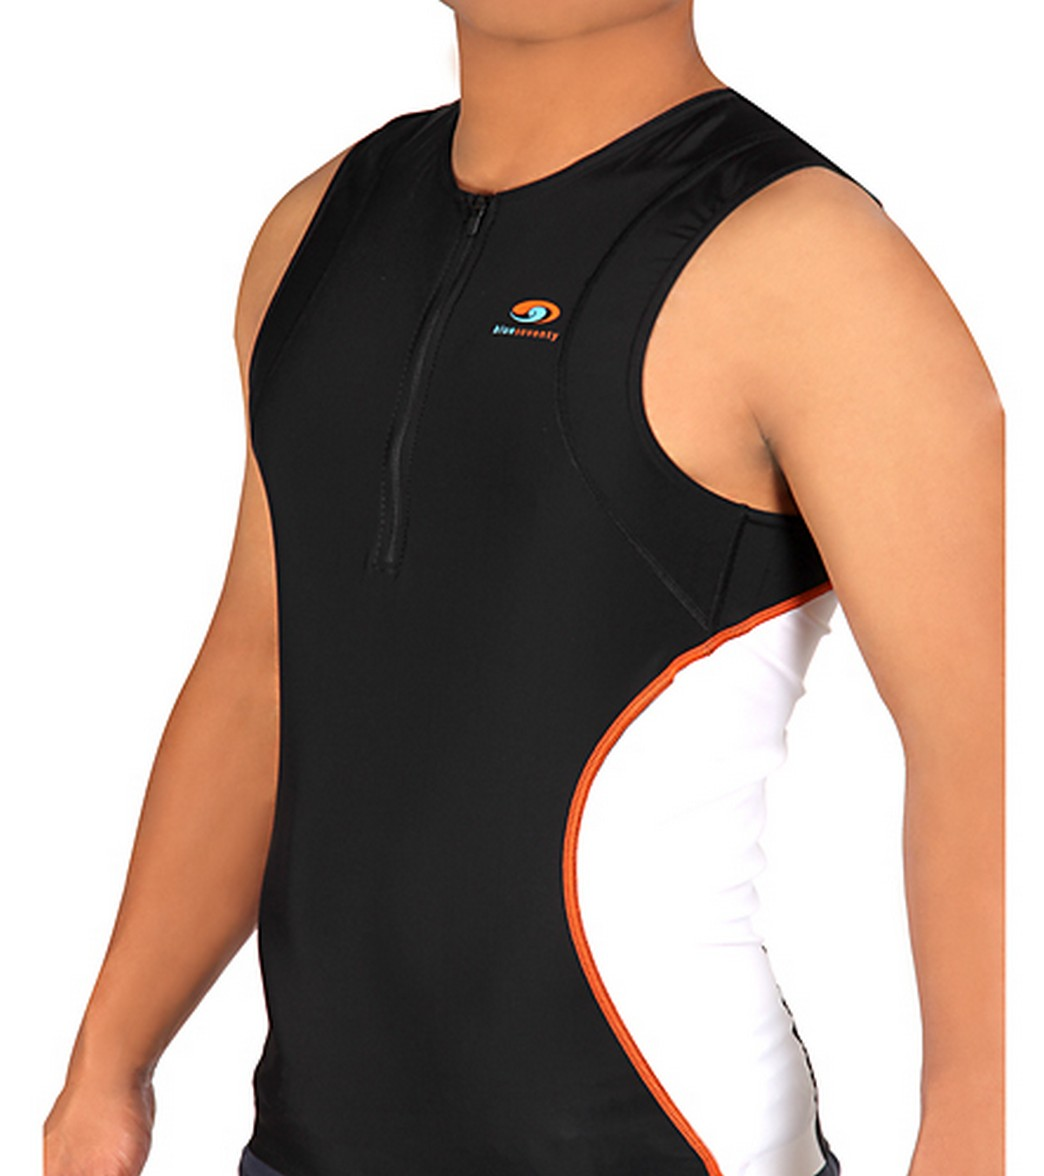 Blue Seventy Men's Tri Zip Top Triathlon -